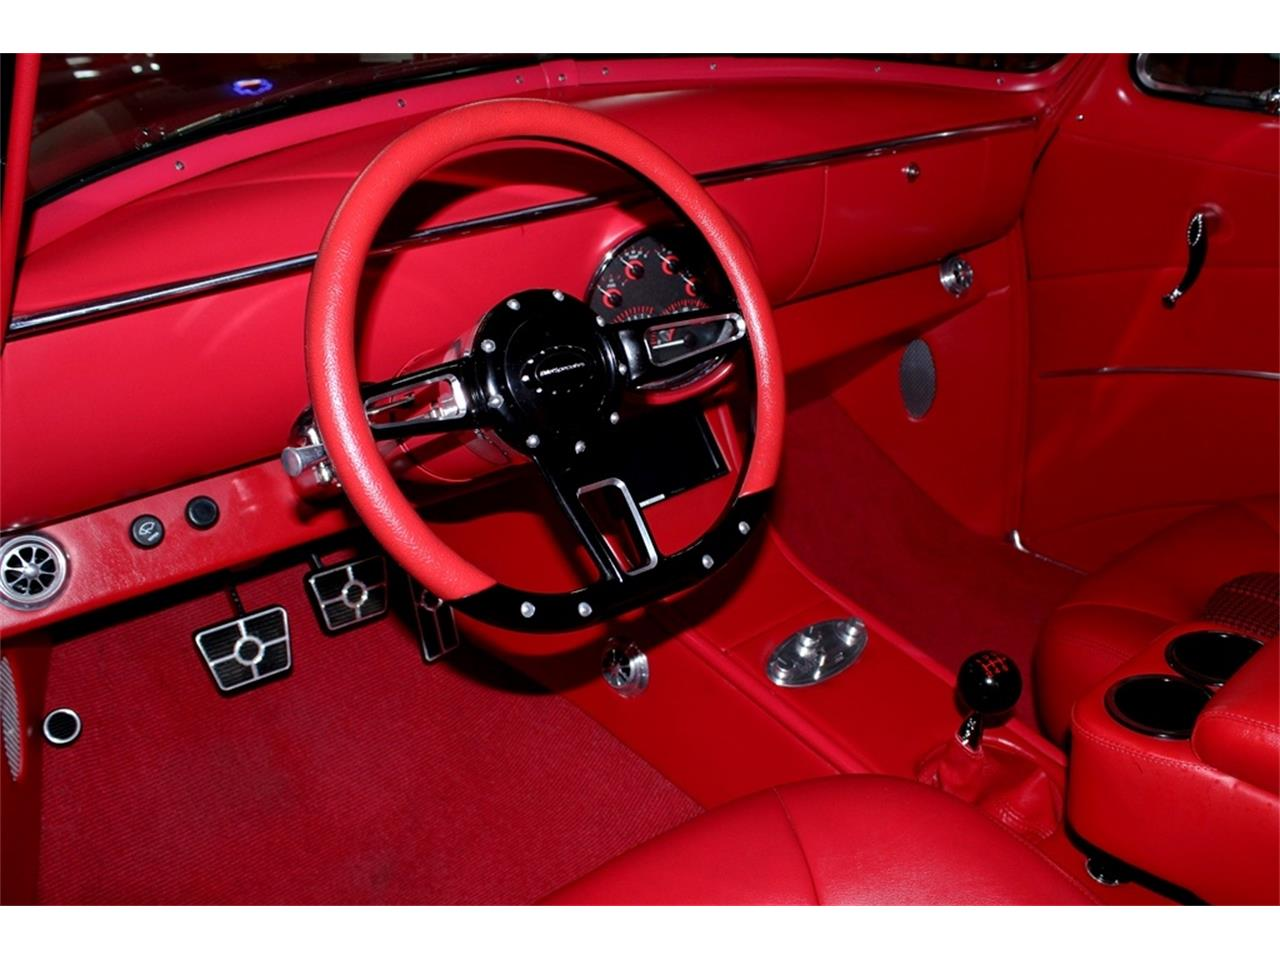 Large Picture of Classic '50 Chevrolet Styleline Deluxe - $79,900.00 - QQK1